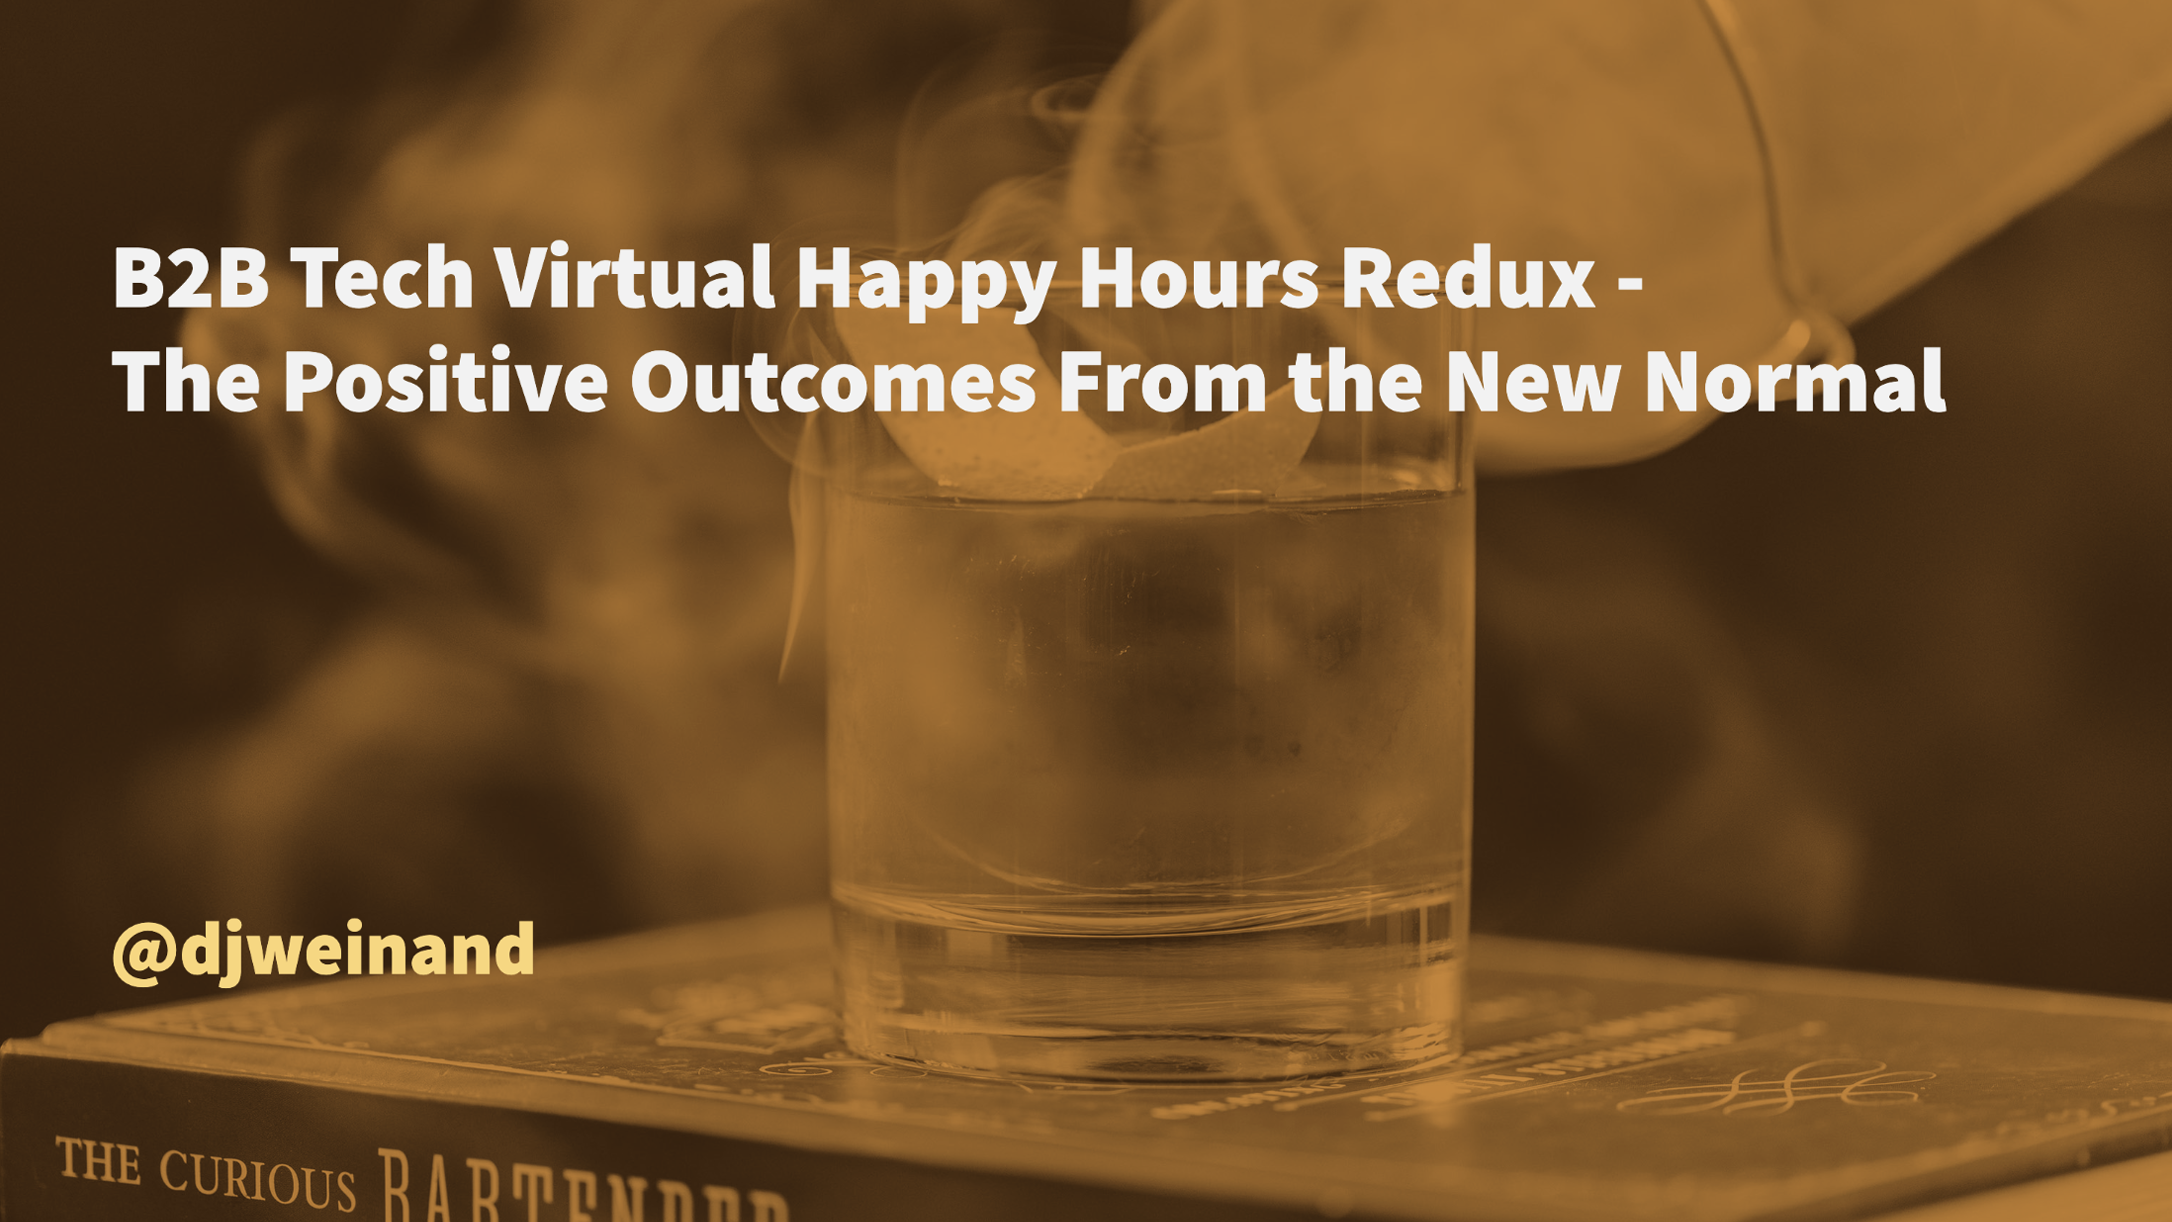 B2B Tech Virtual Happy Hours Redux - The Positive Outcomes From the New Normal